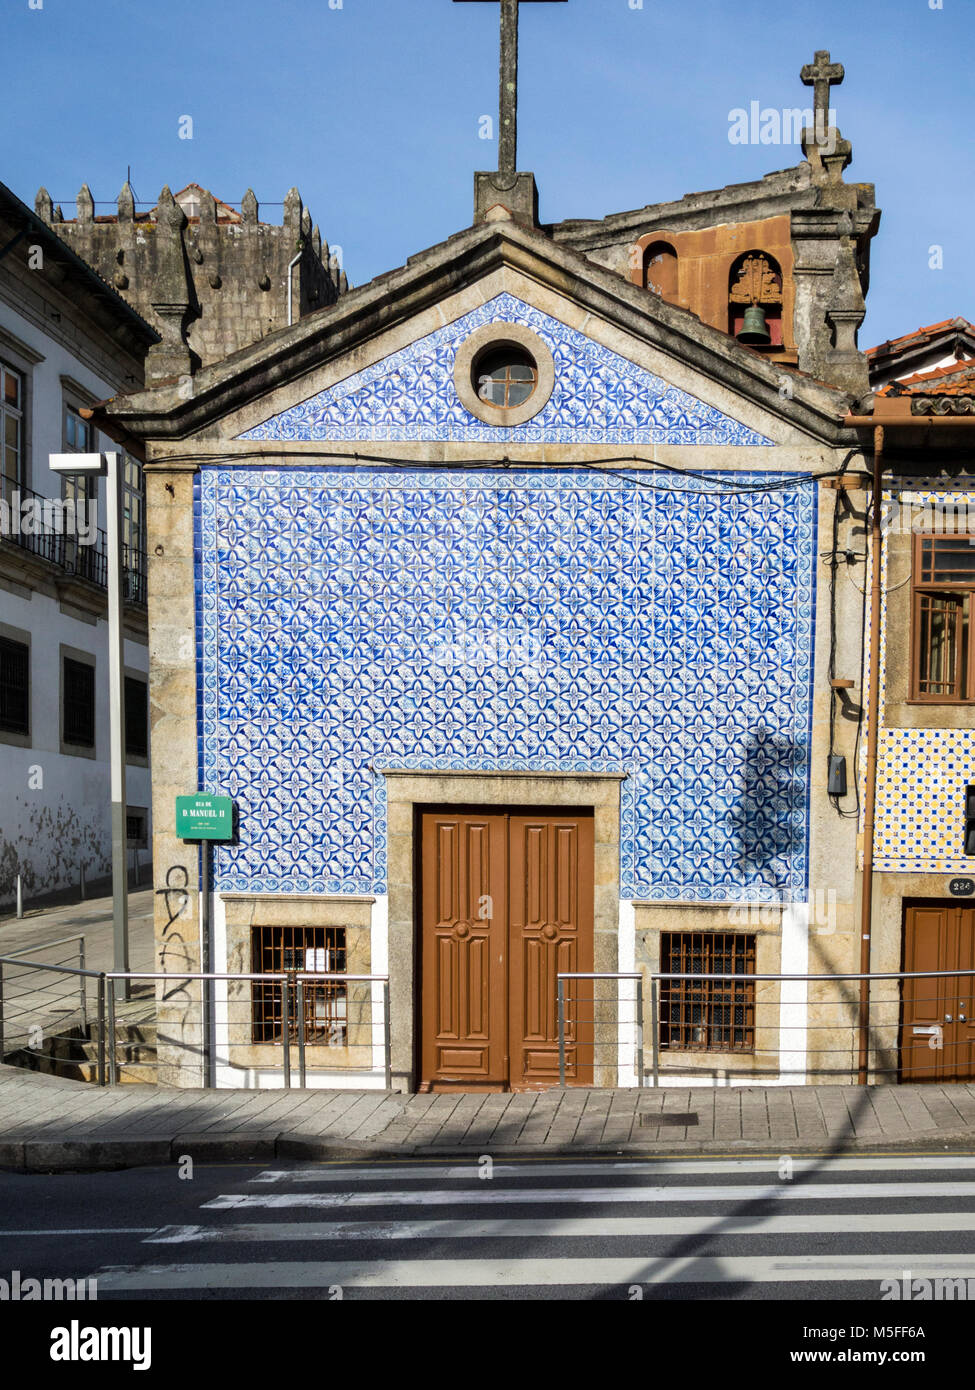 Historic chapel with wall tiles in Porto, Portugal - Stock Image